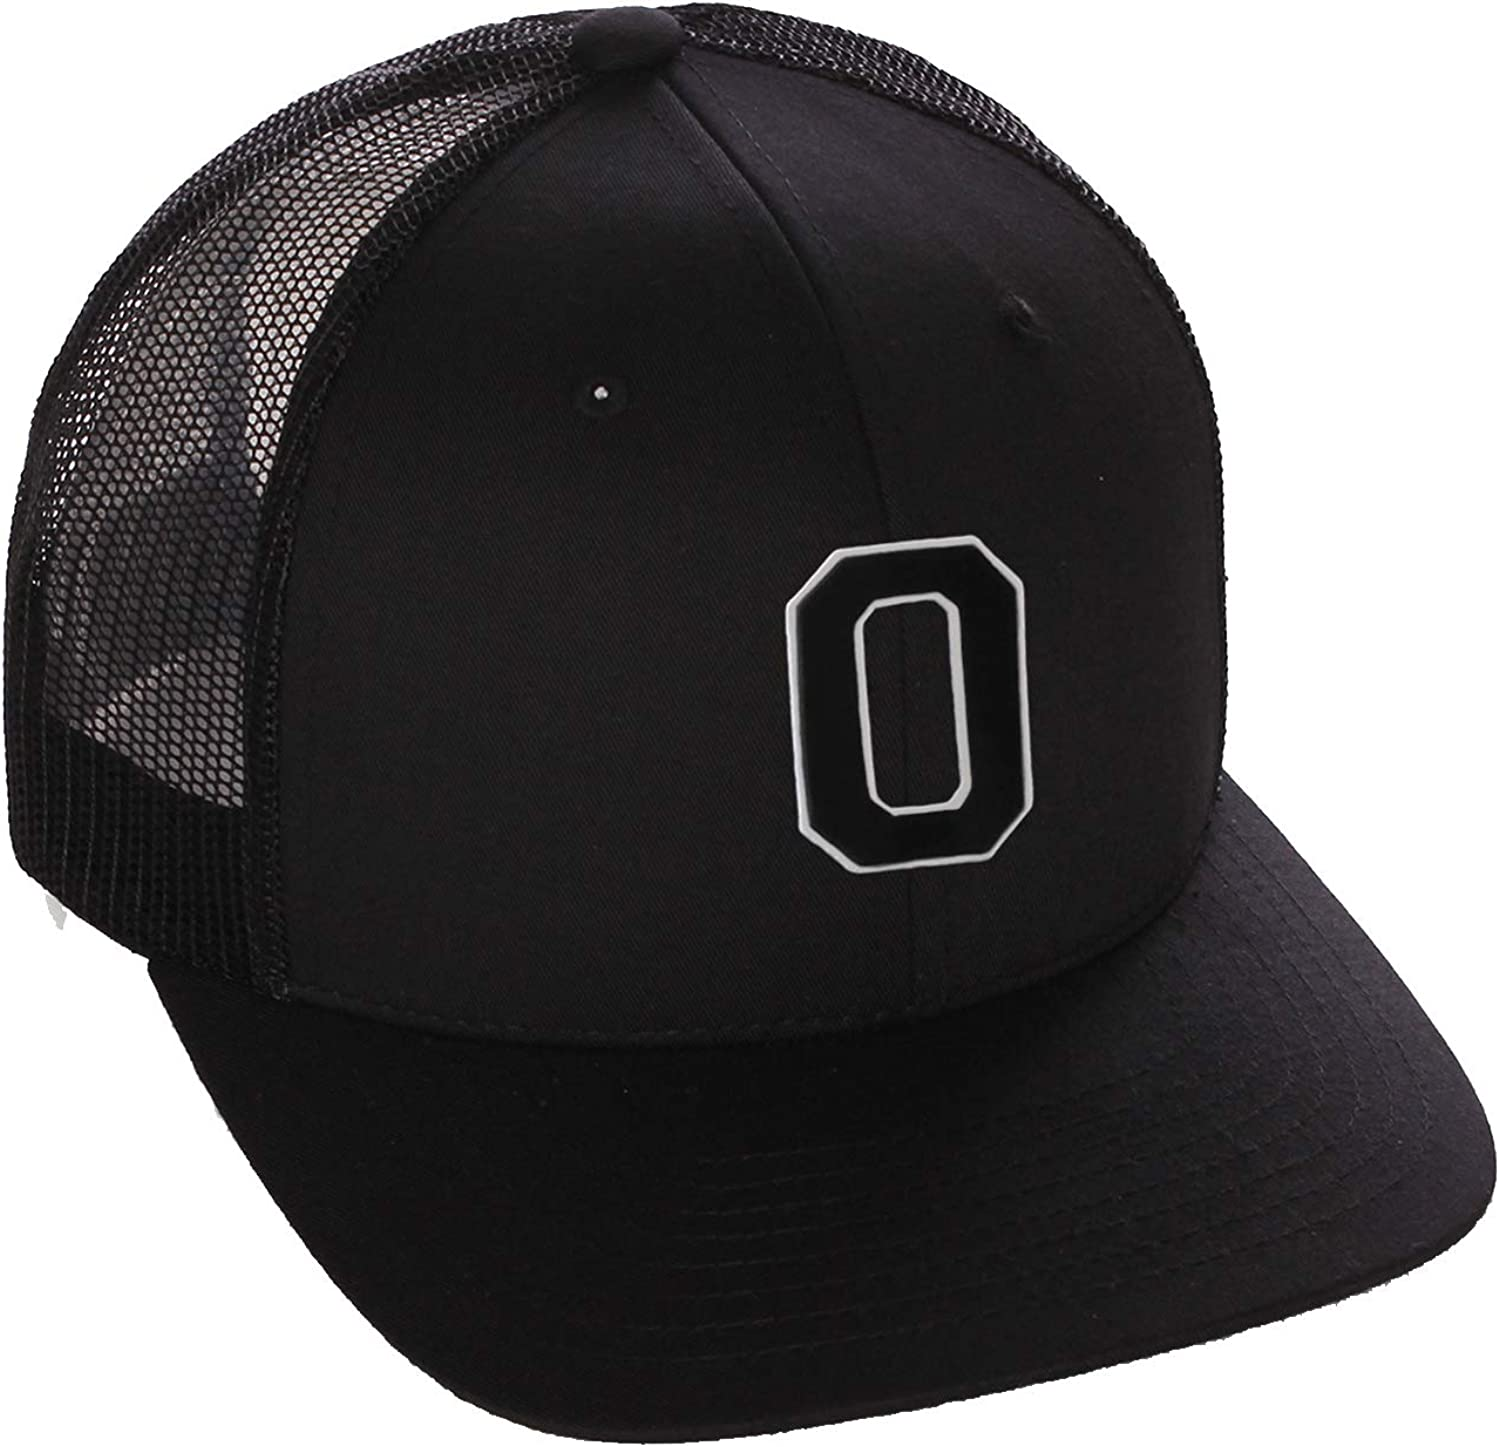 Structured Trucker Mesh Hat Custom Colors Letter O Initial Baseball Mid Profile